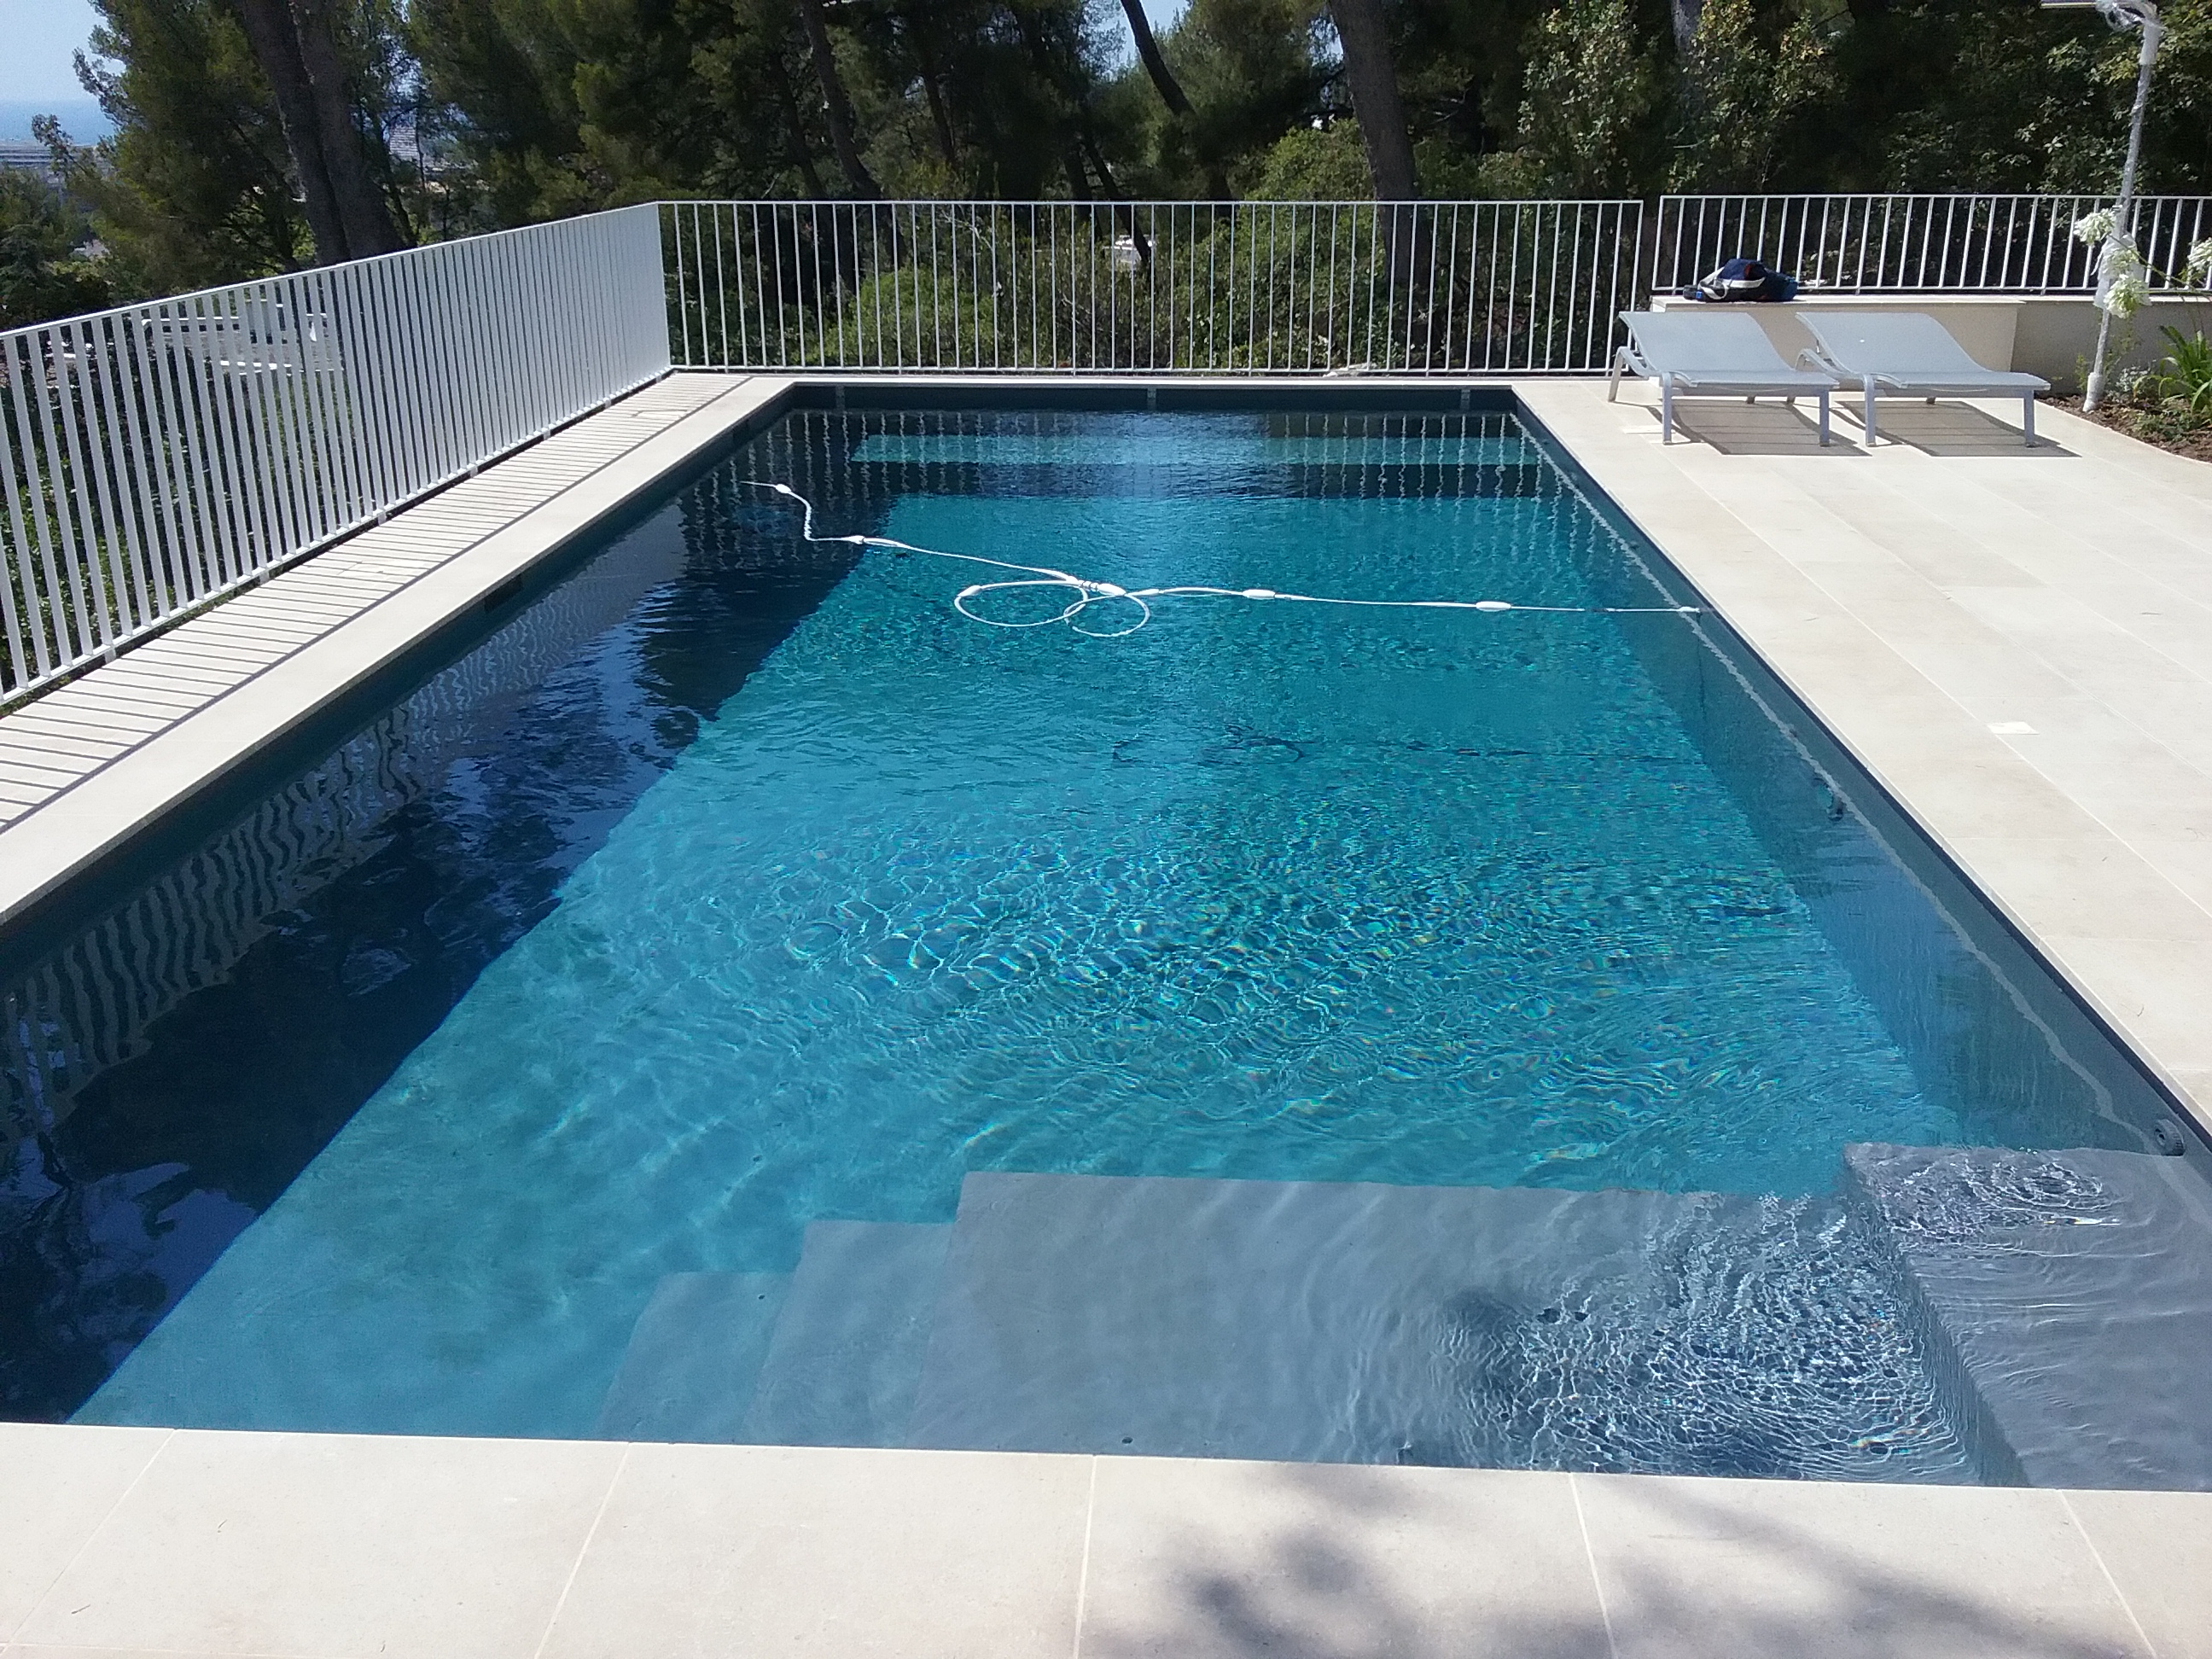 Une piscine b ton grise anthracite marseille 8 me for Piscine beton ou coque